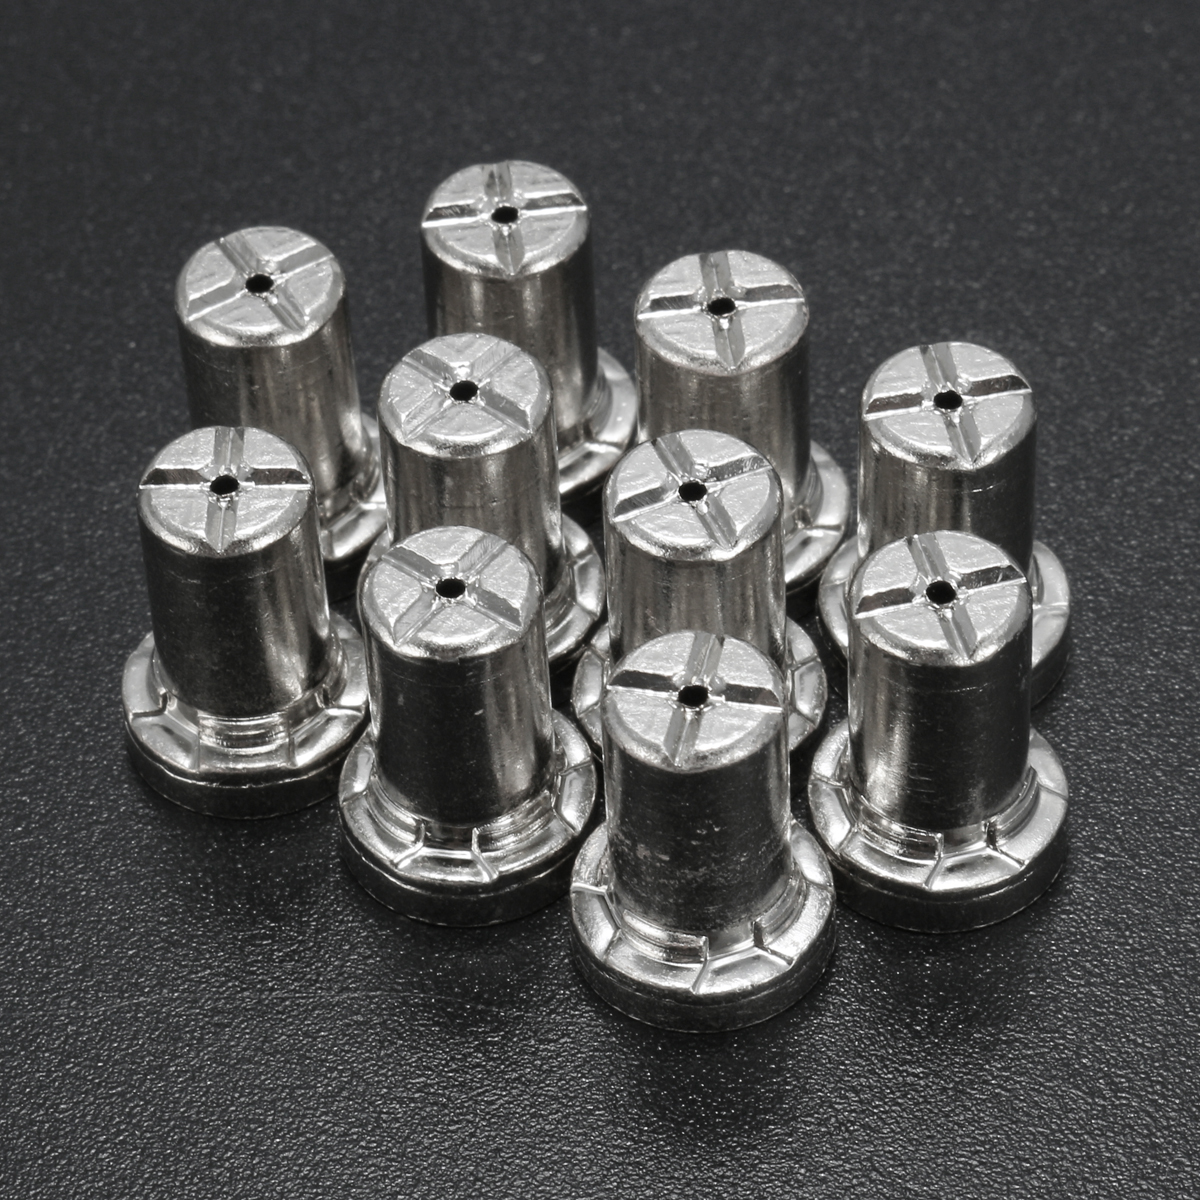 Image 3 - 30 Pcs LG 40 PT 31 Plasma Cutter Cutting Torch Consumables Accessories Extended Nickel plated Tips Nozzle Electrodes Shield Cup-in Welding Nozzles from Tools